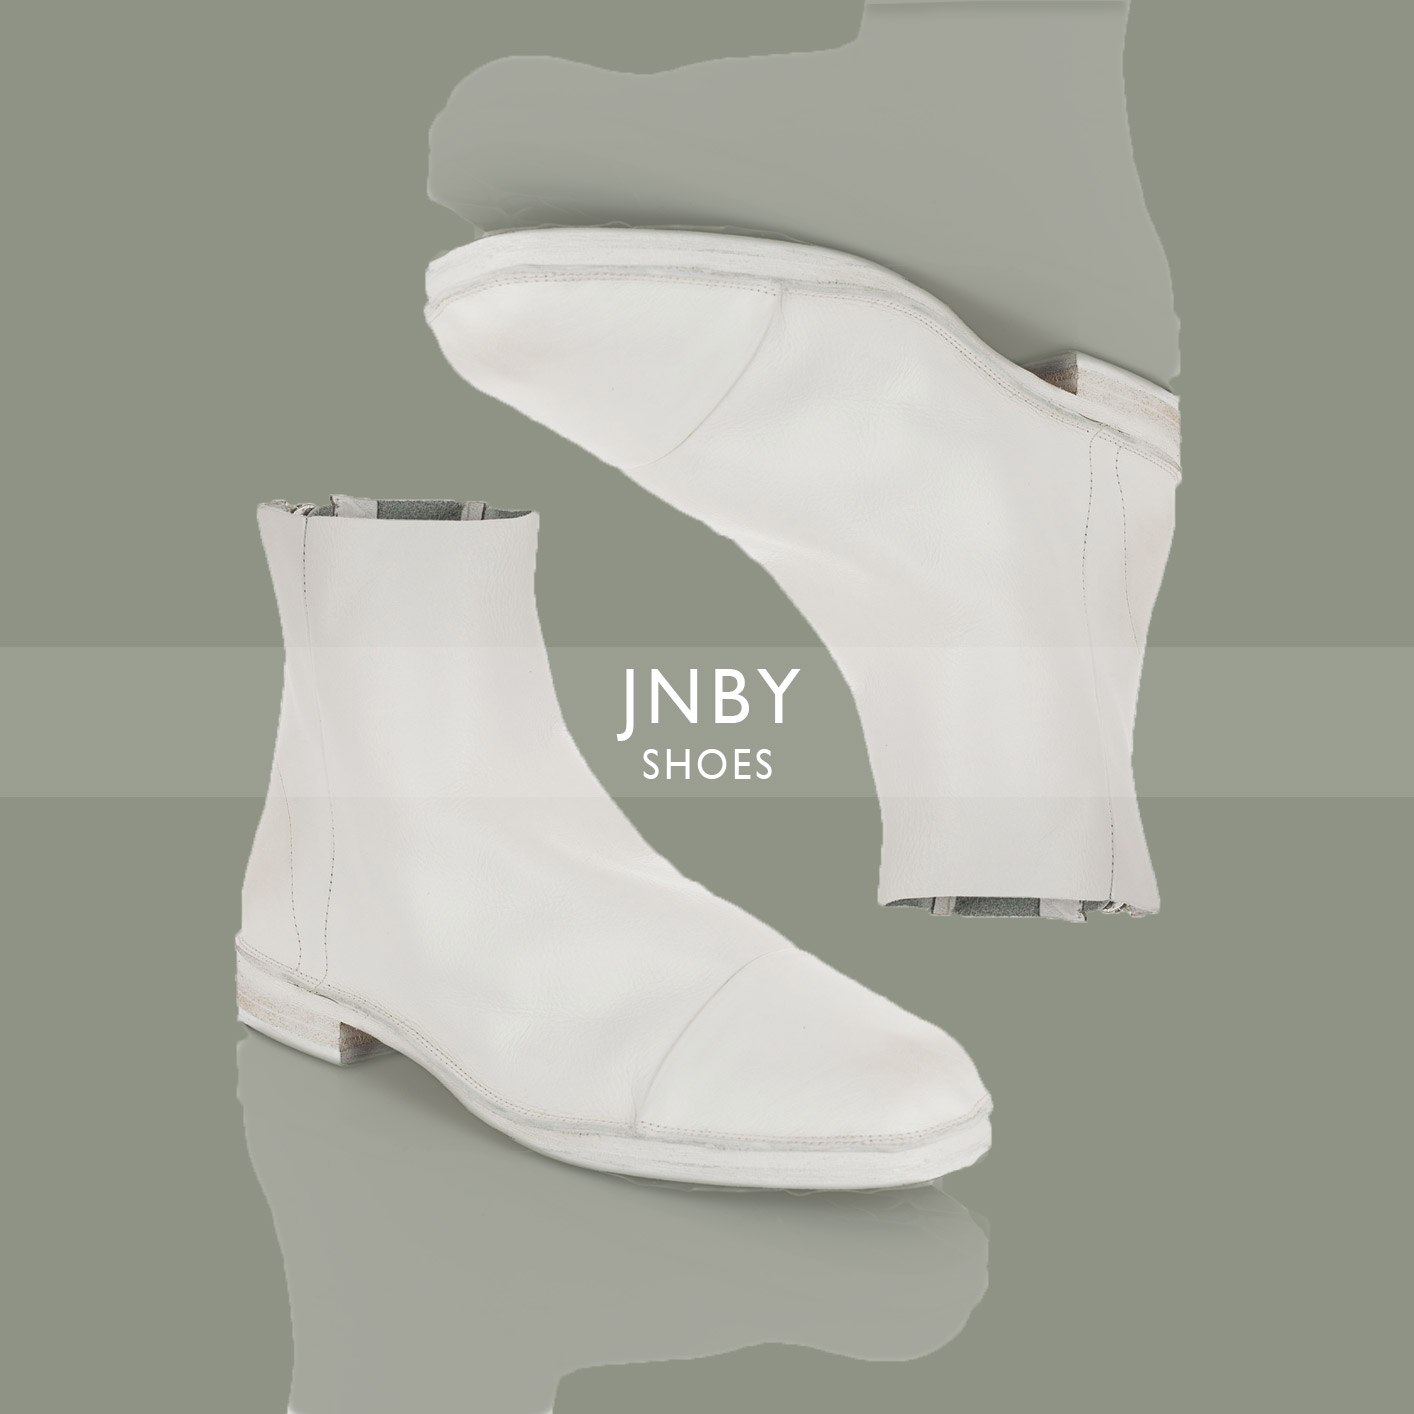 JNBY SHOES